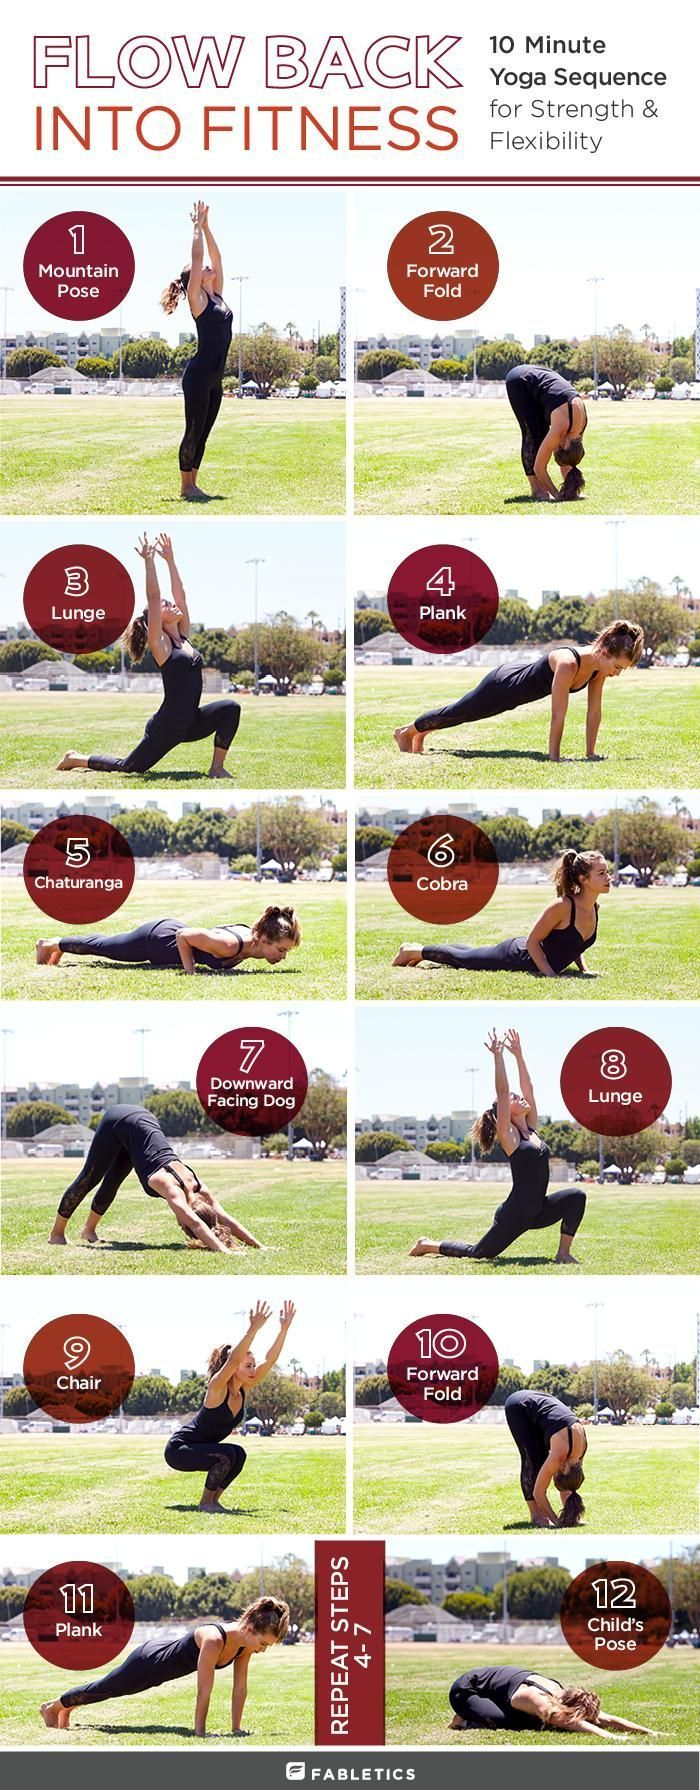 #blogfableticscom #flexibility #effective #strength #sequence #routine #fitness #simple #minute #bui...